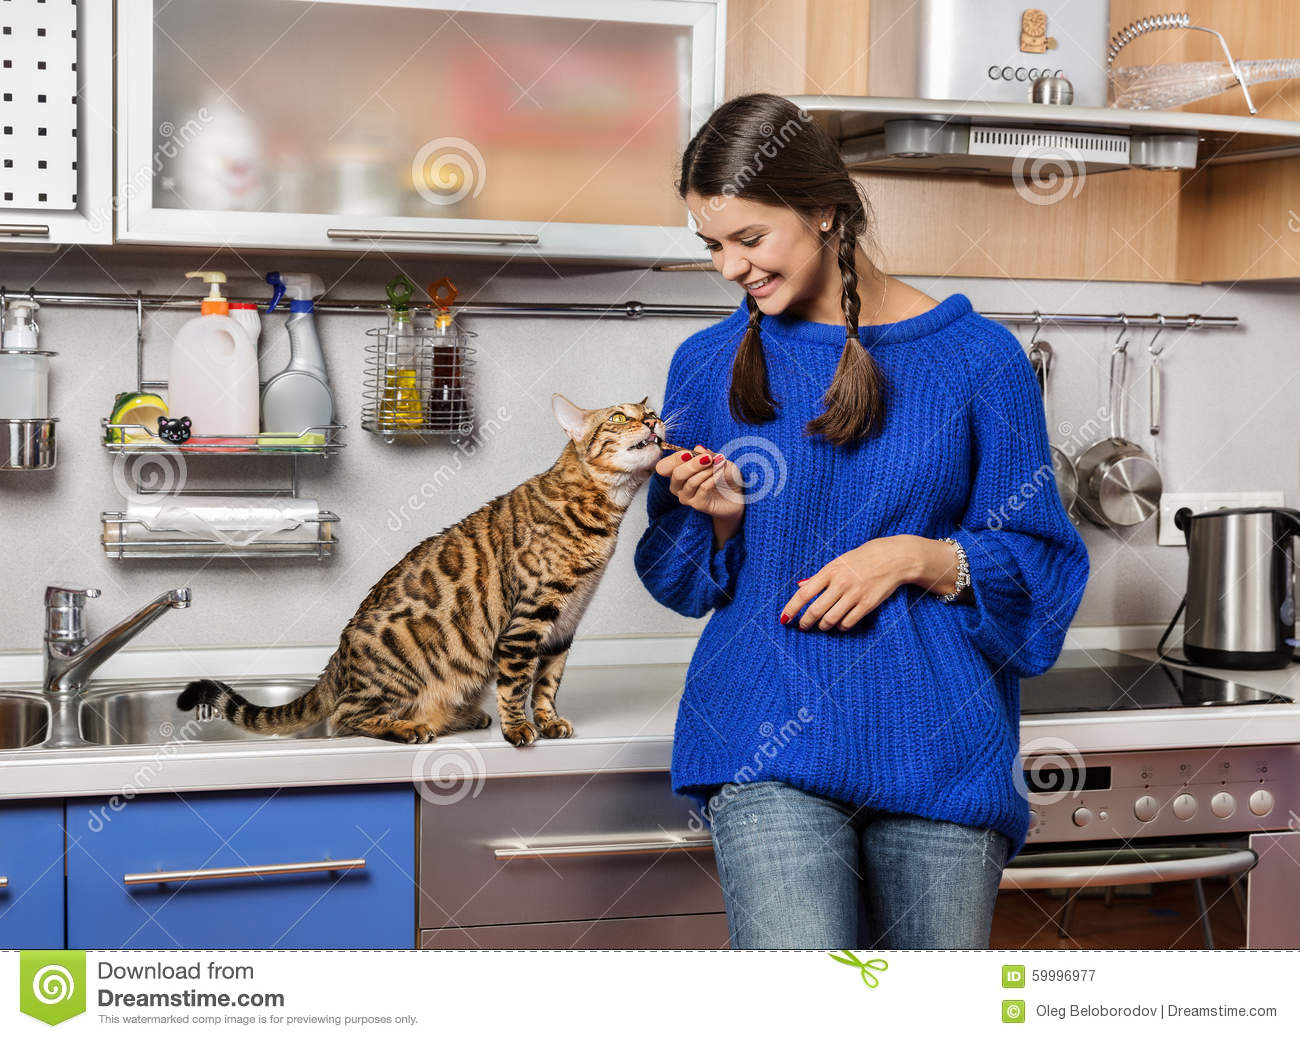 Cat And Girl In The Kitchen. Stock Image - Image: 59996977